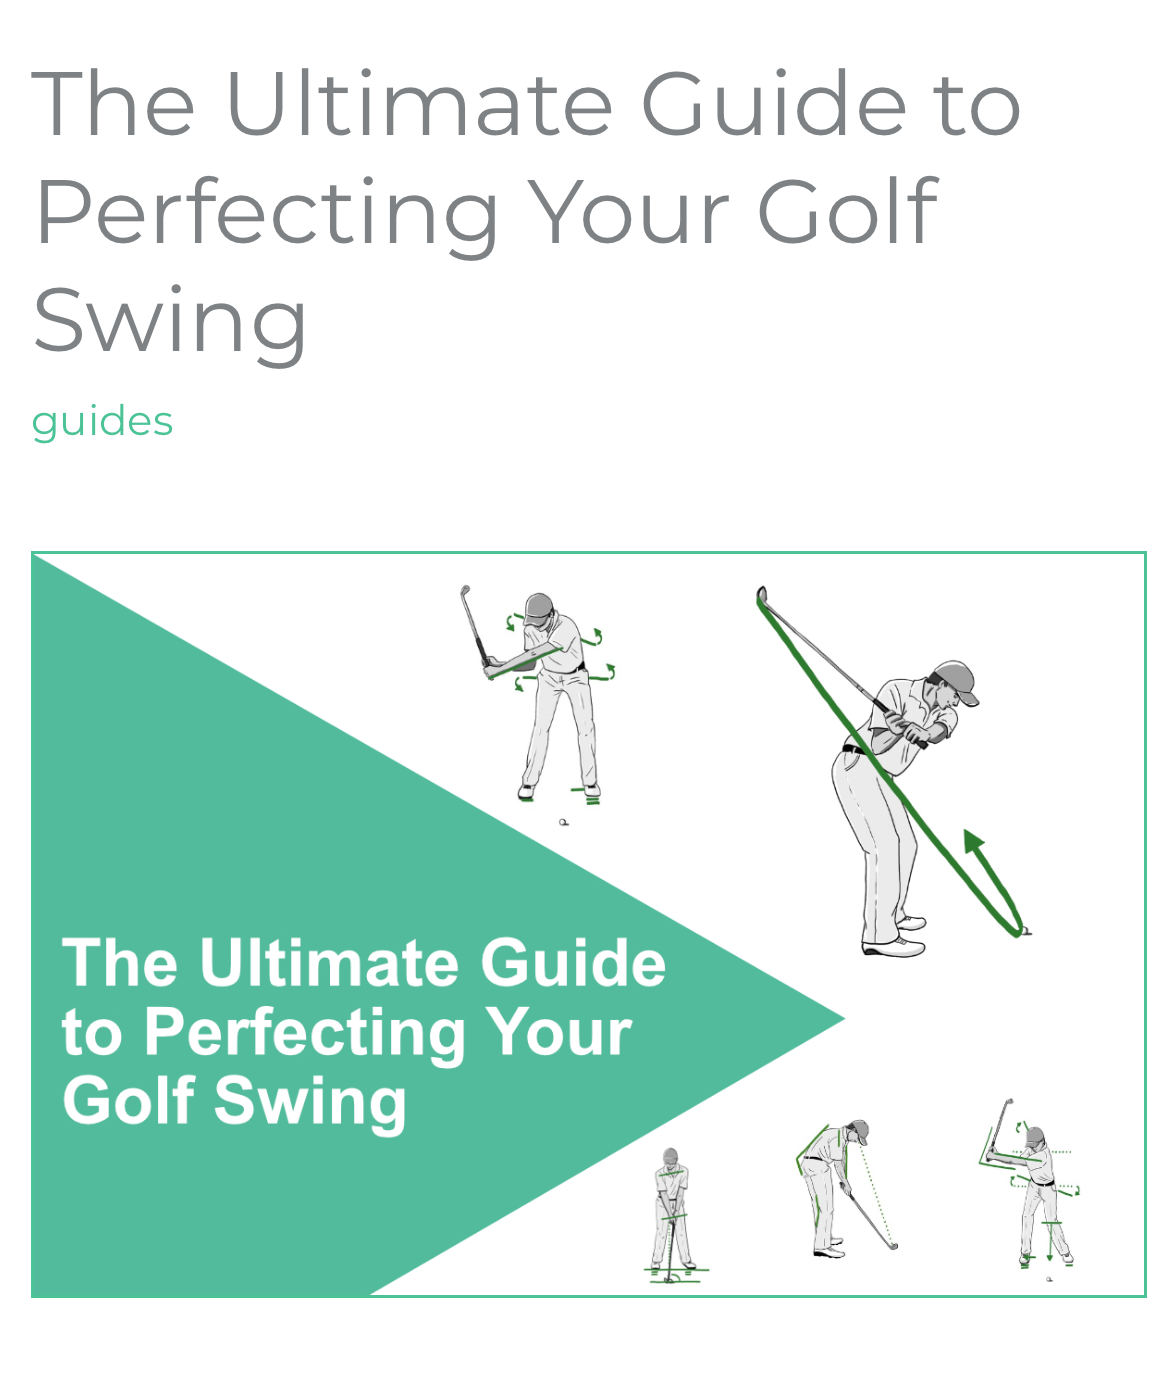 Ultimate Guide to Perfecting Your Golf Swing